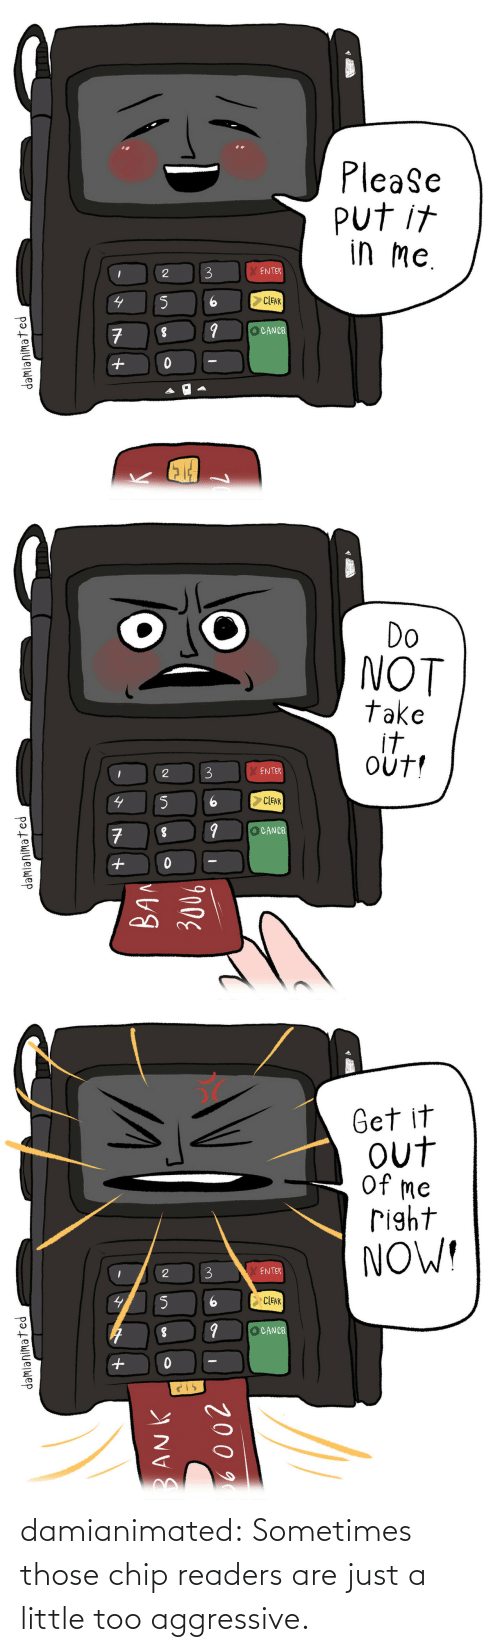 Chip: damianimated: Sometimes those chip readers are just a little too aggressive.